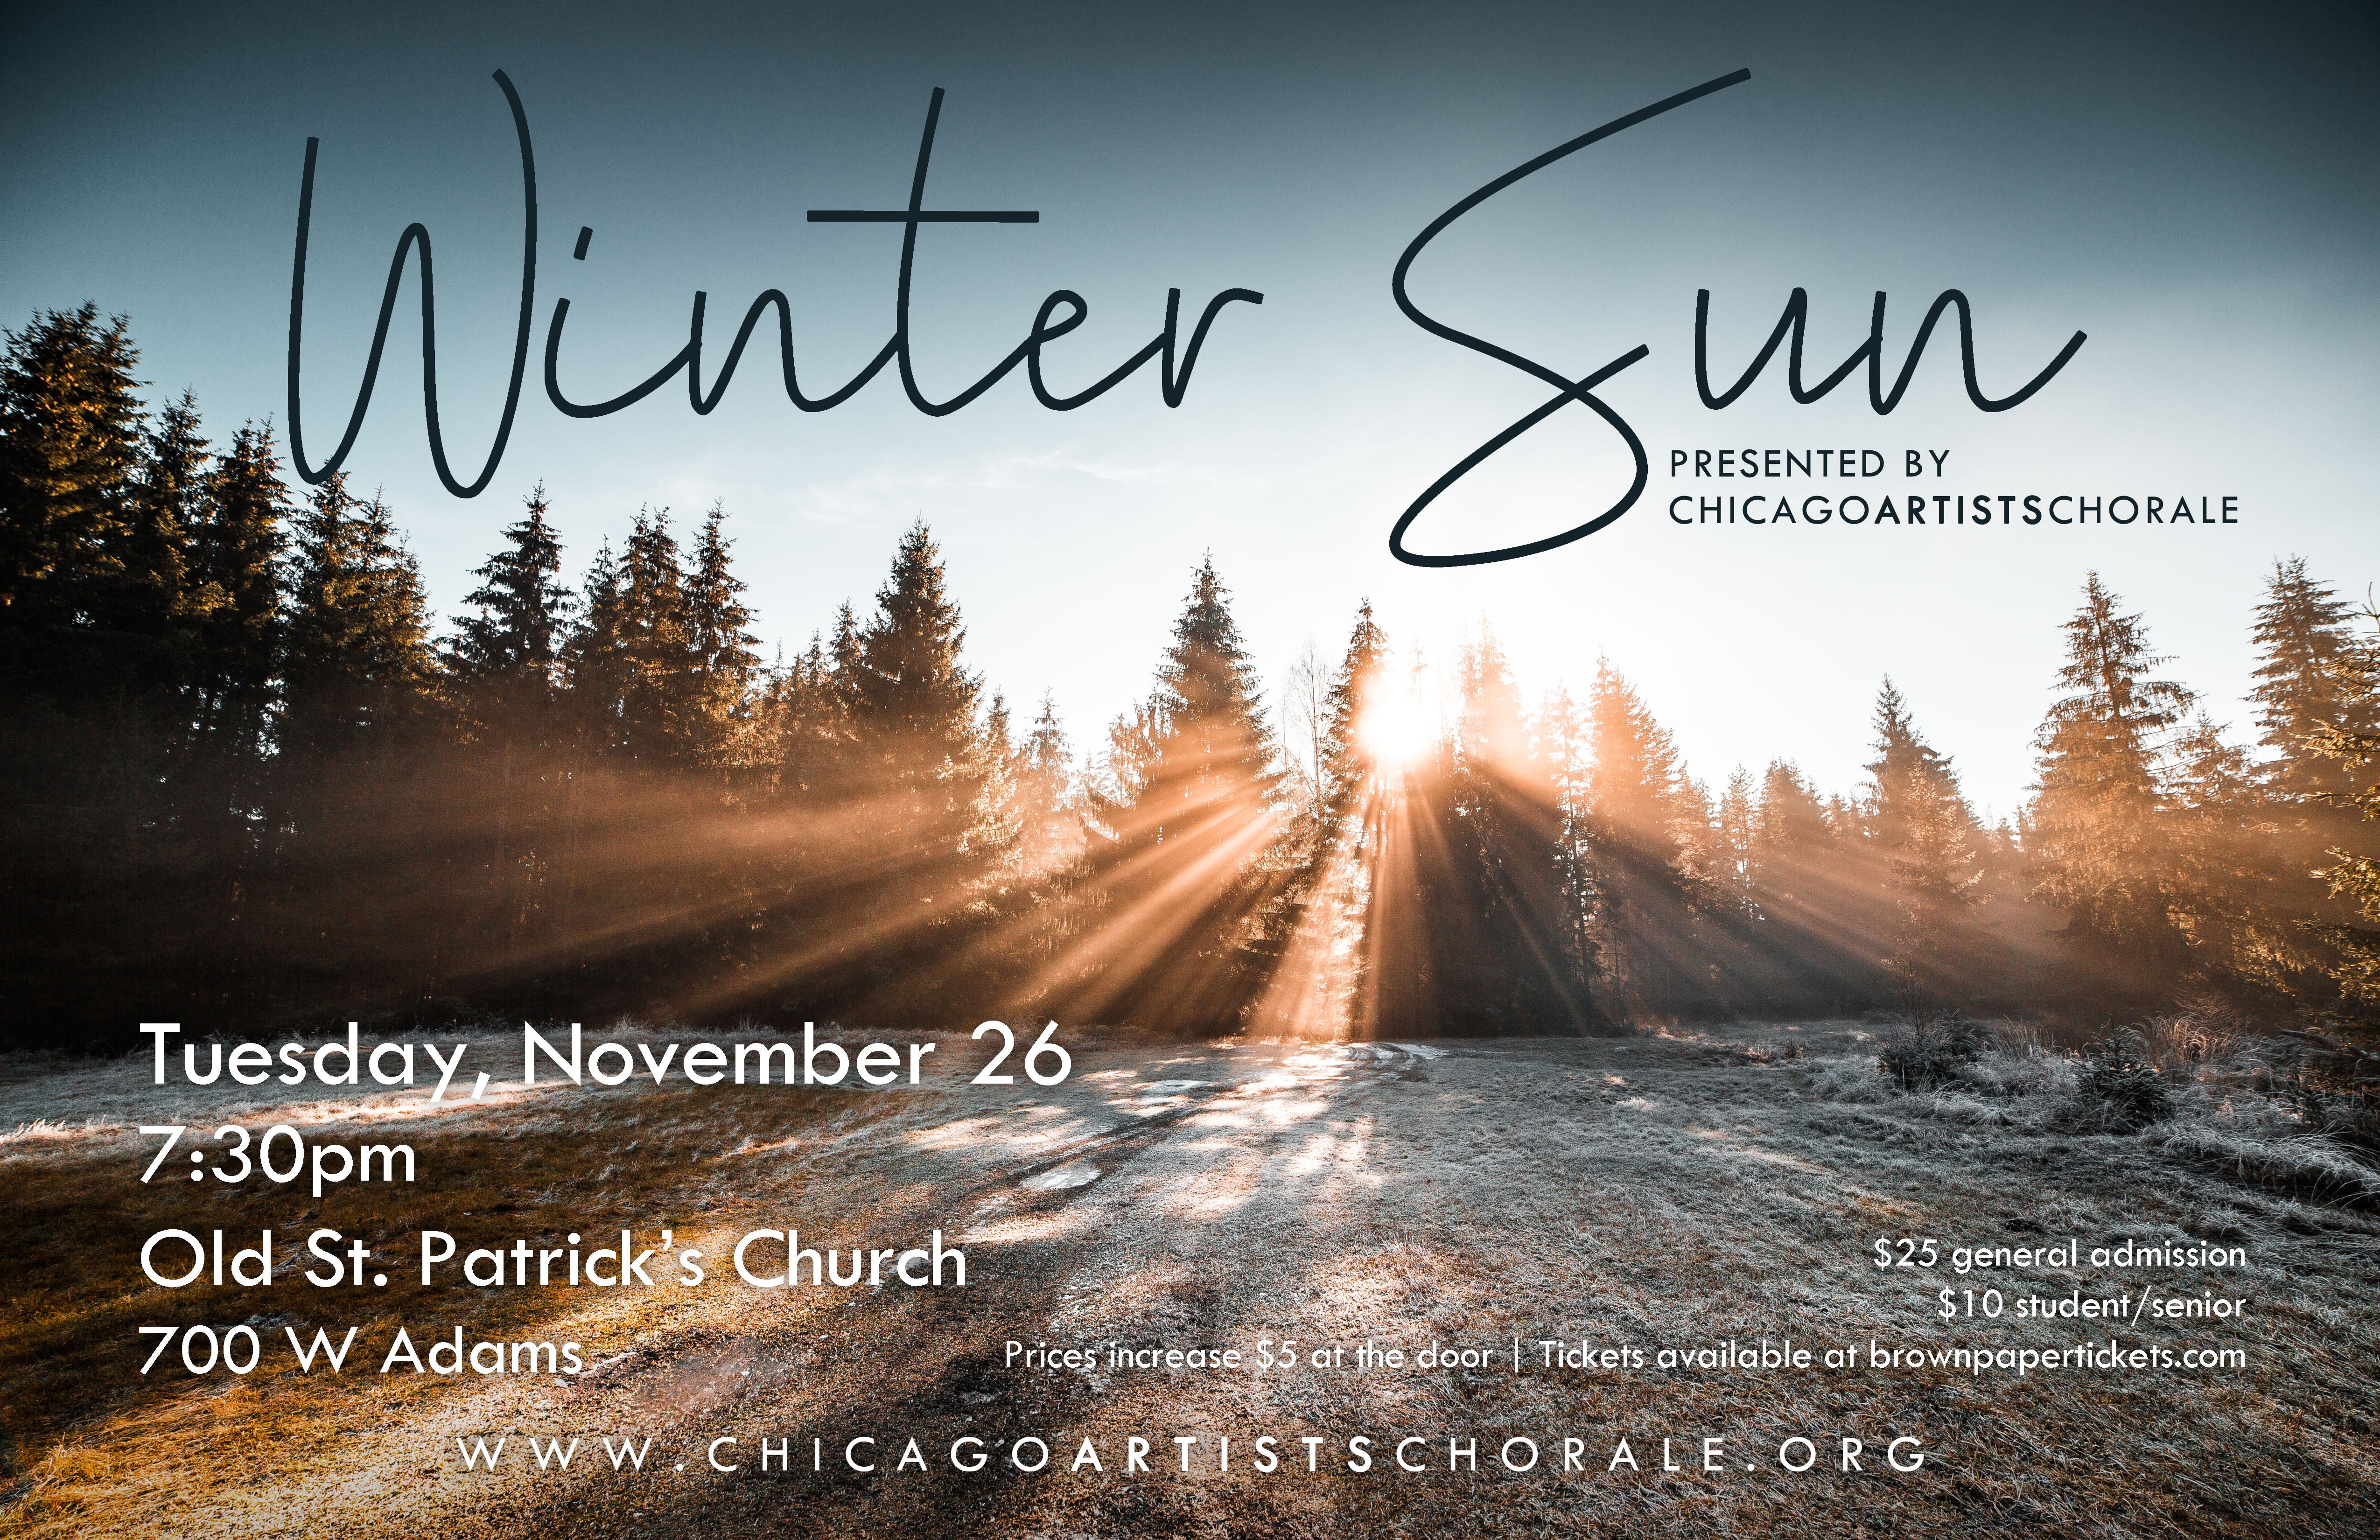 Concert poster featuring a photograph of sunlight shining from the sky through a row of evergreen trees illuminating a grassy area covered in a light snow.